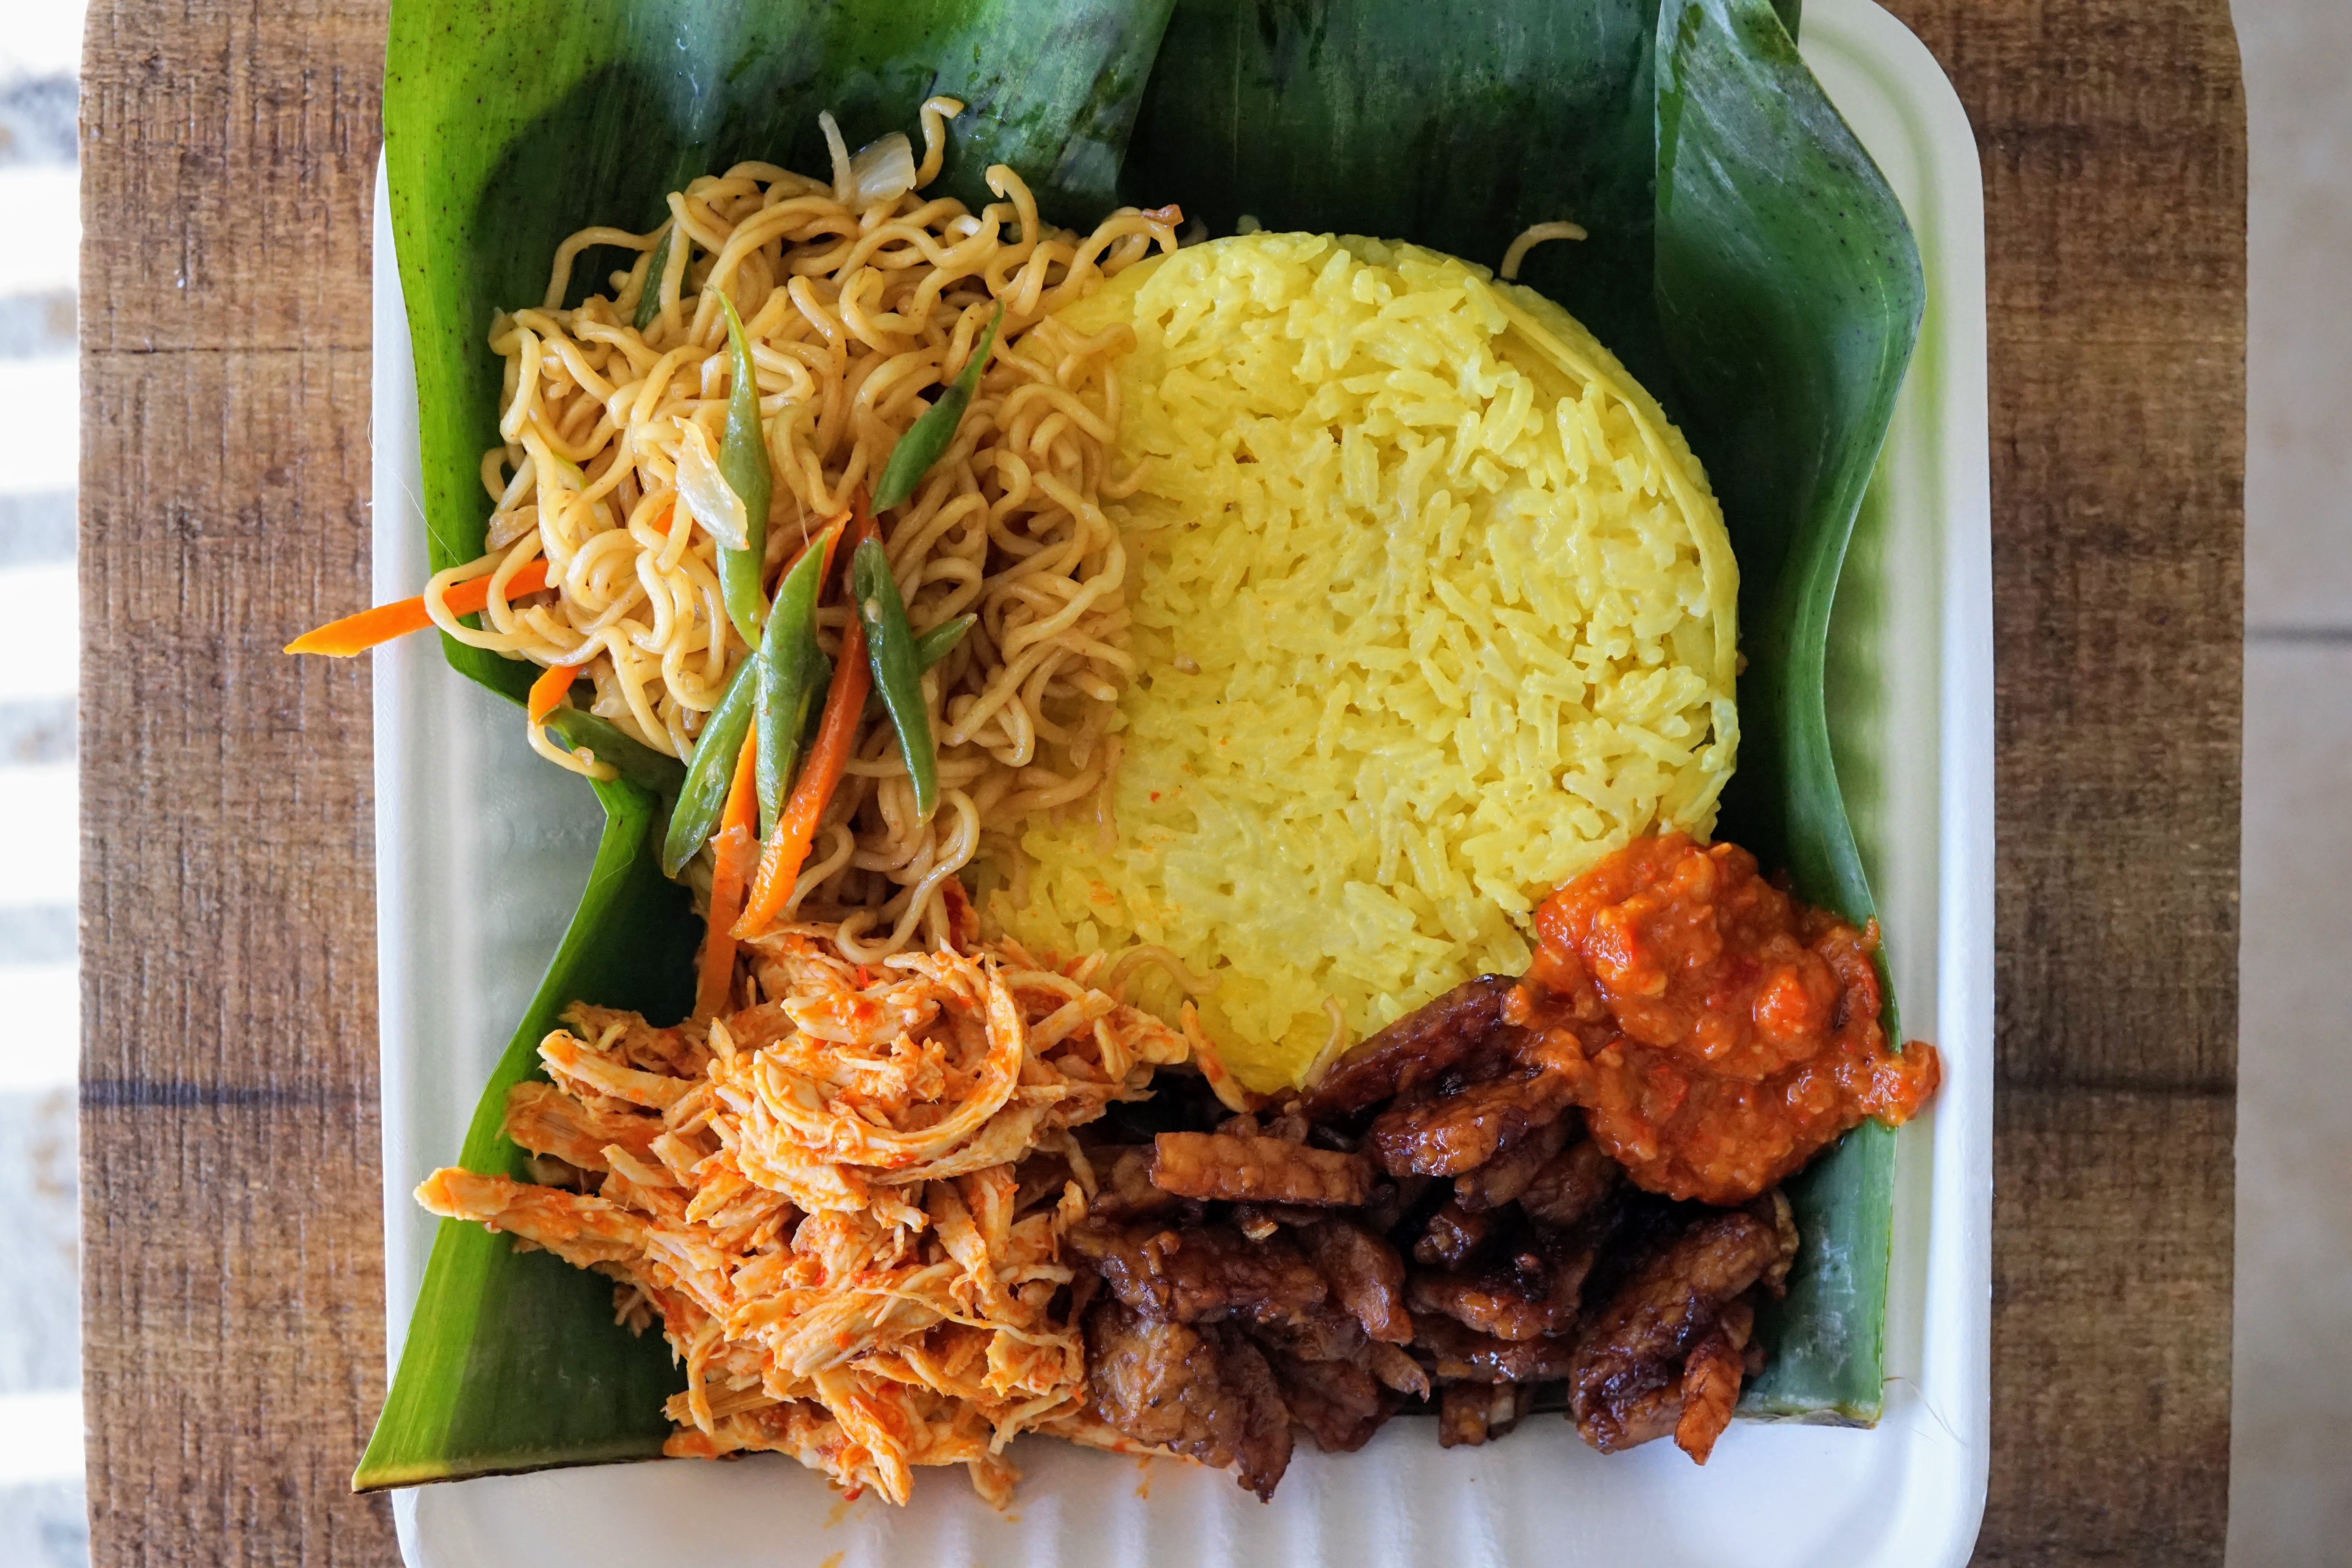 Nasi jinggo, a classic Balinese dish with chicken and yellow rice cooked in turmeric and coconut milk, from Bali Mesari.